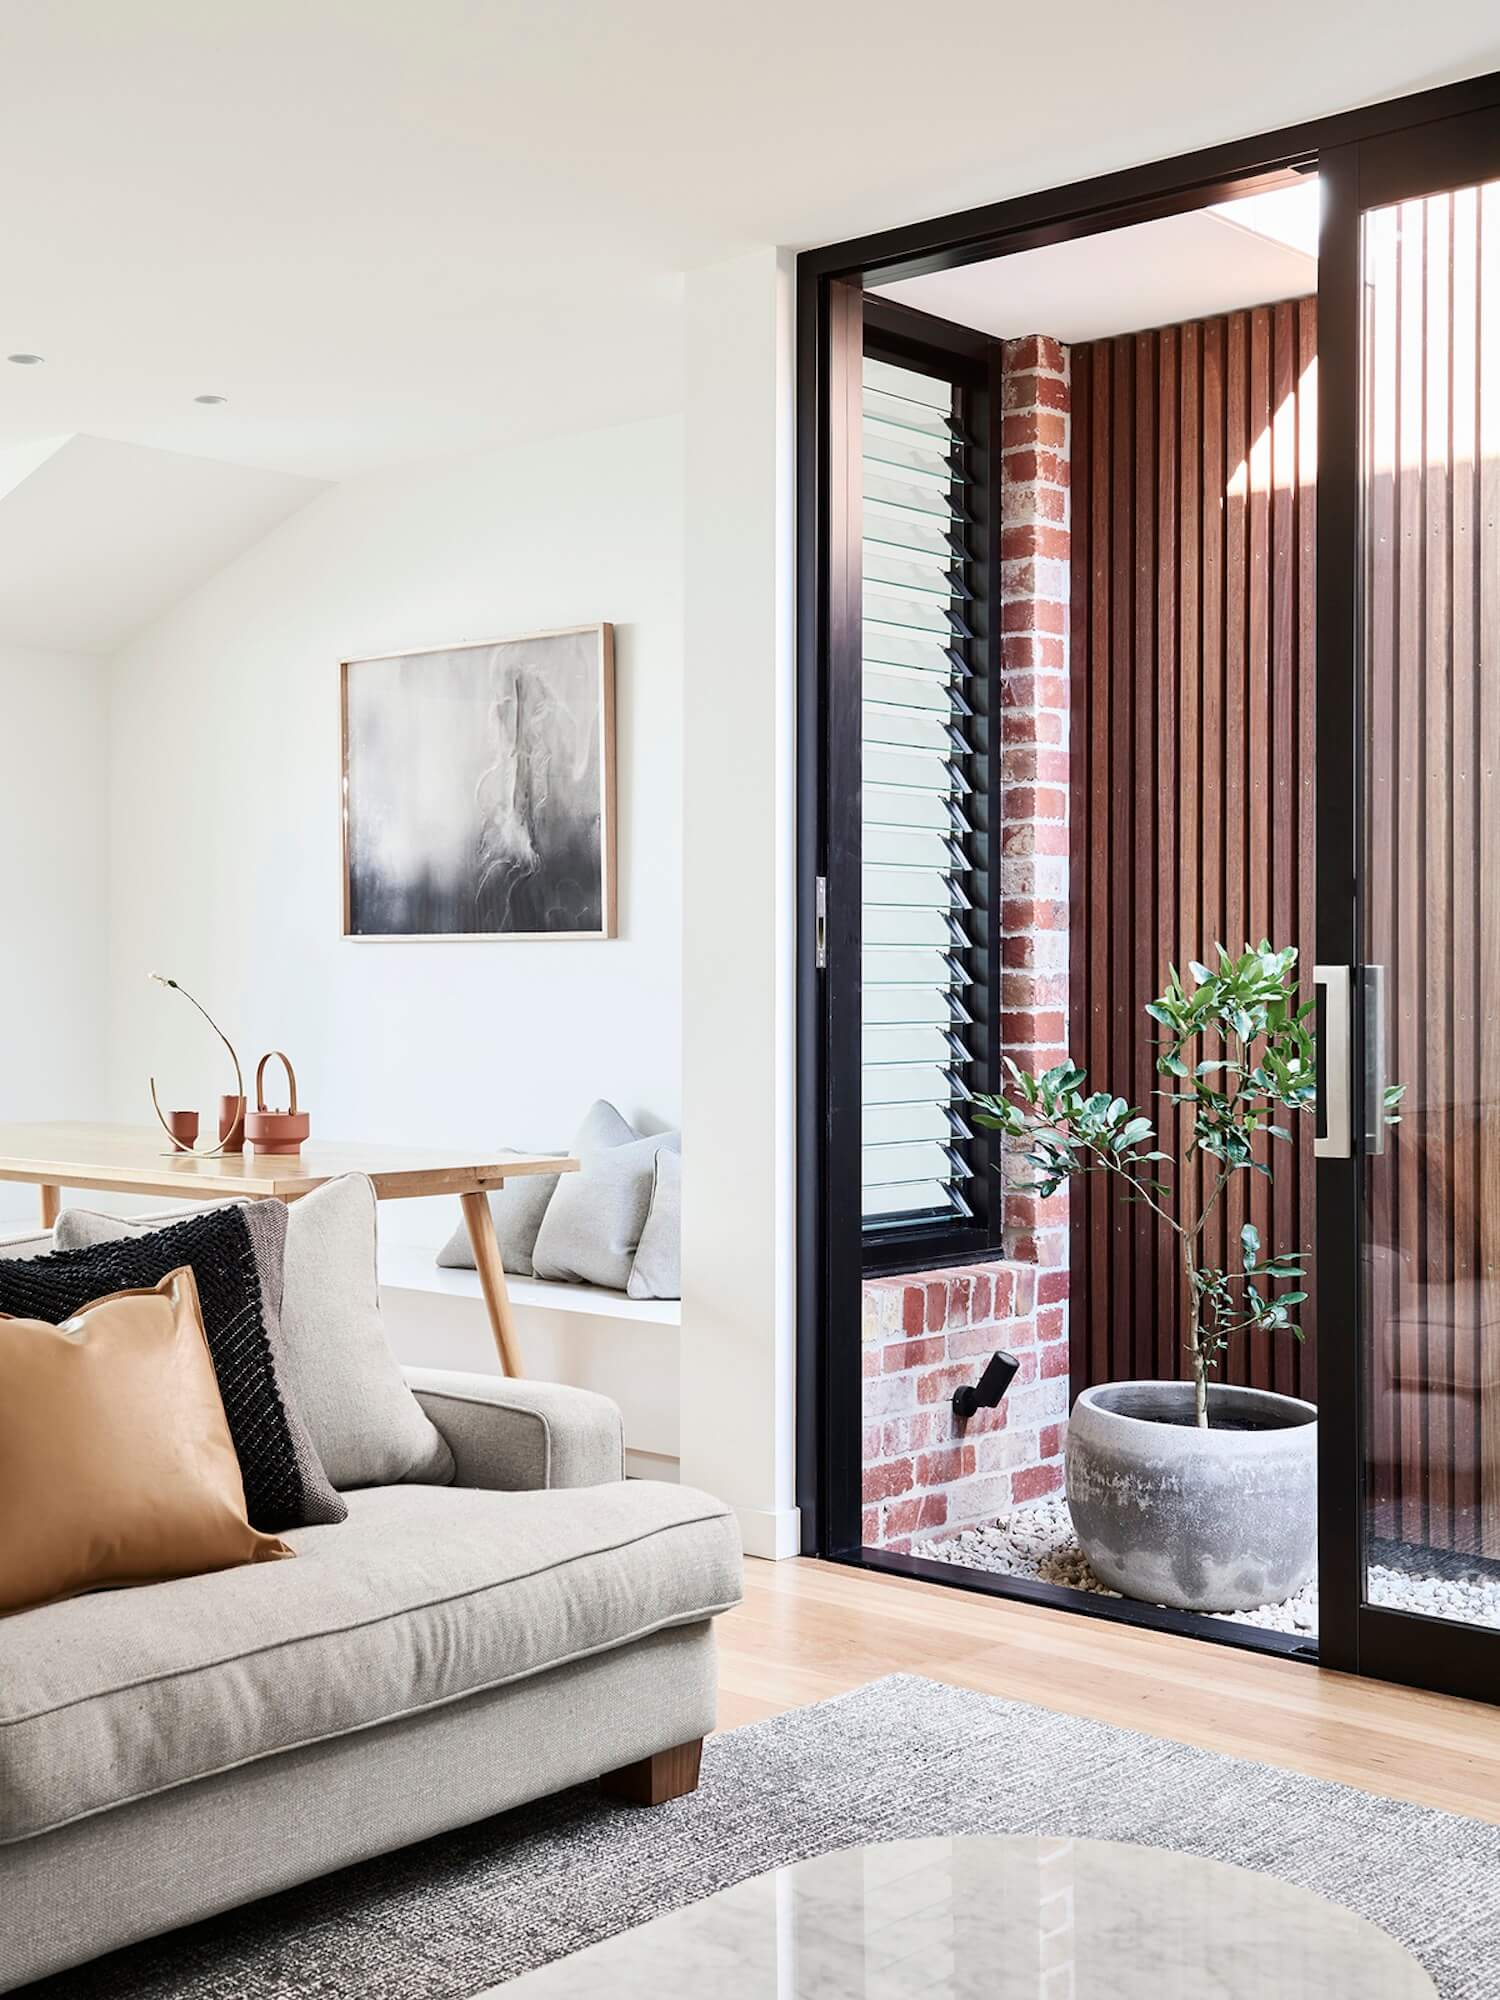 est living australian interiors dan webster architecture albert park terrace 10